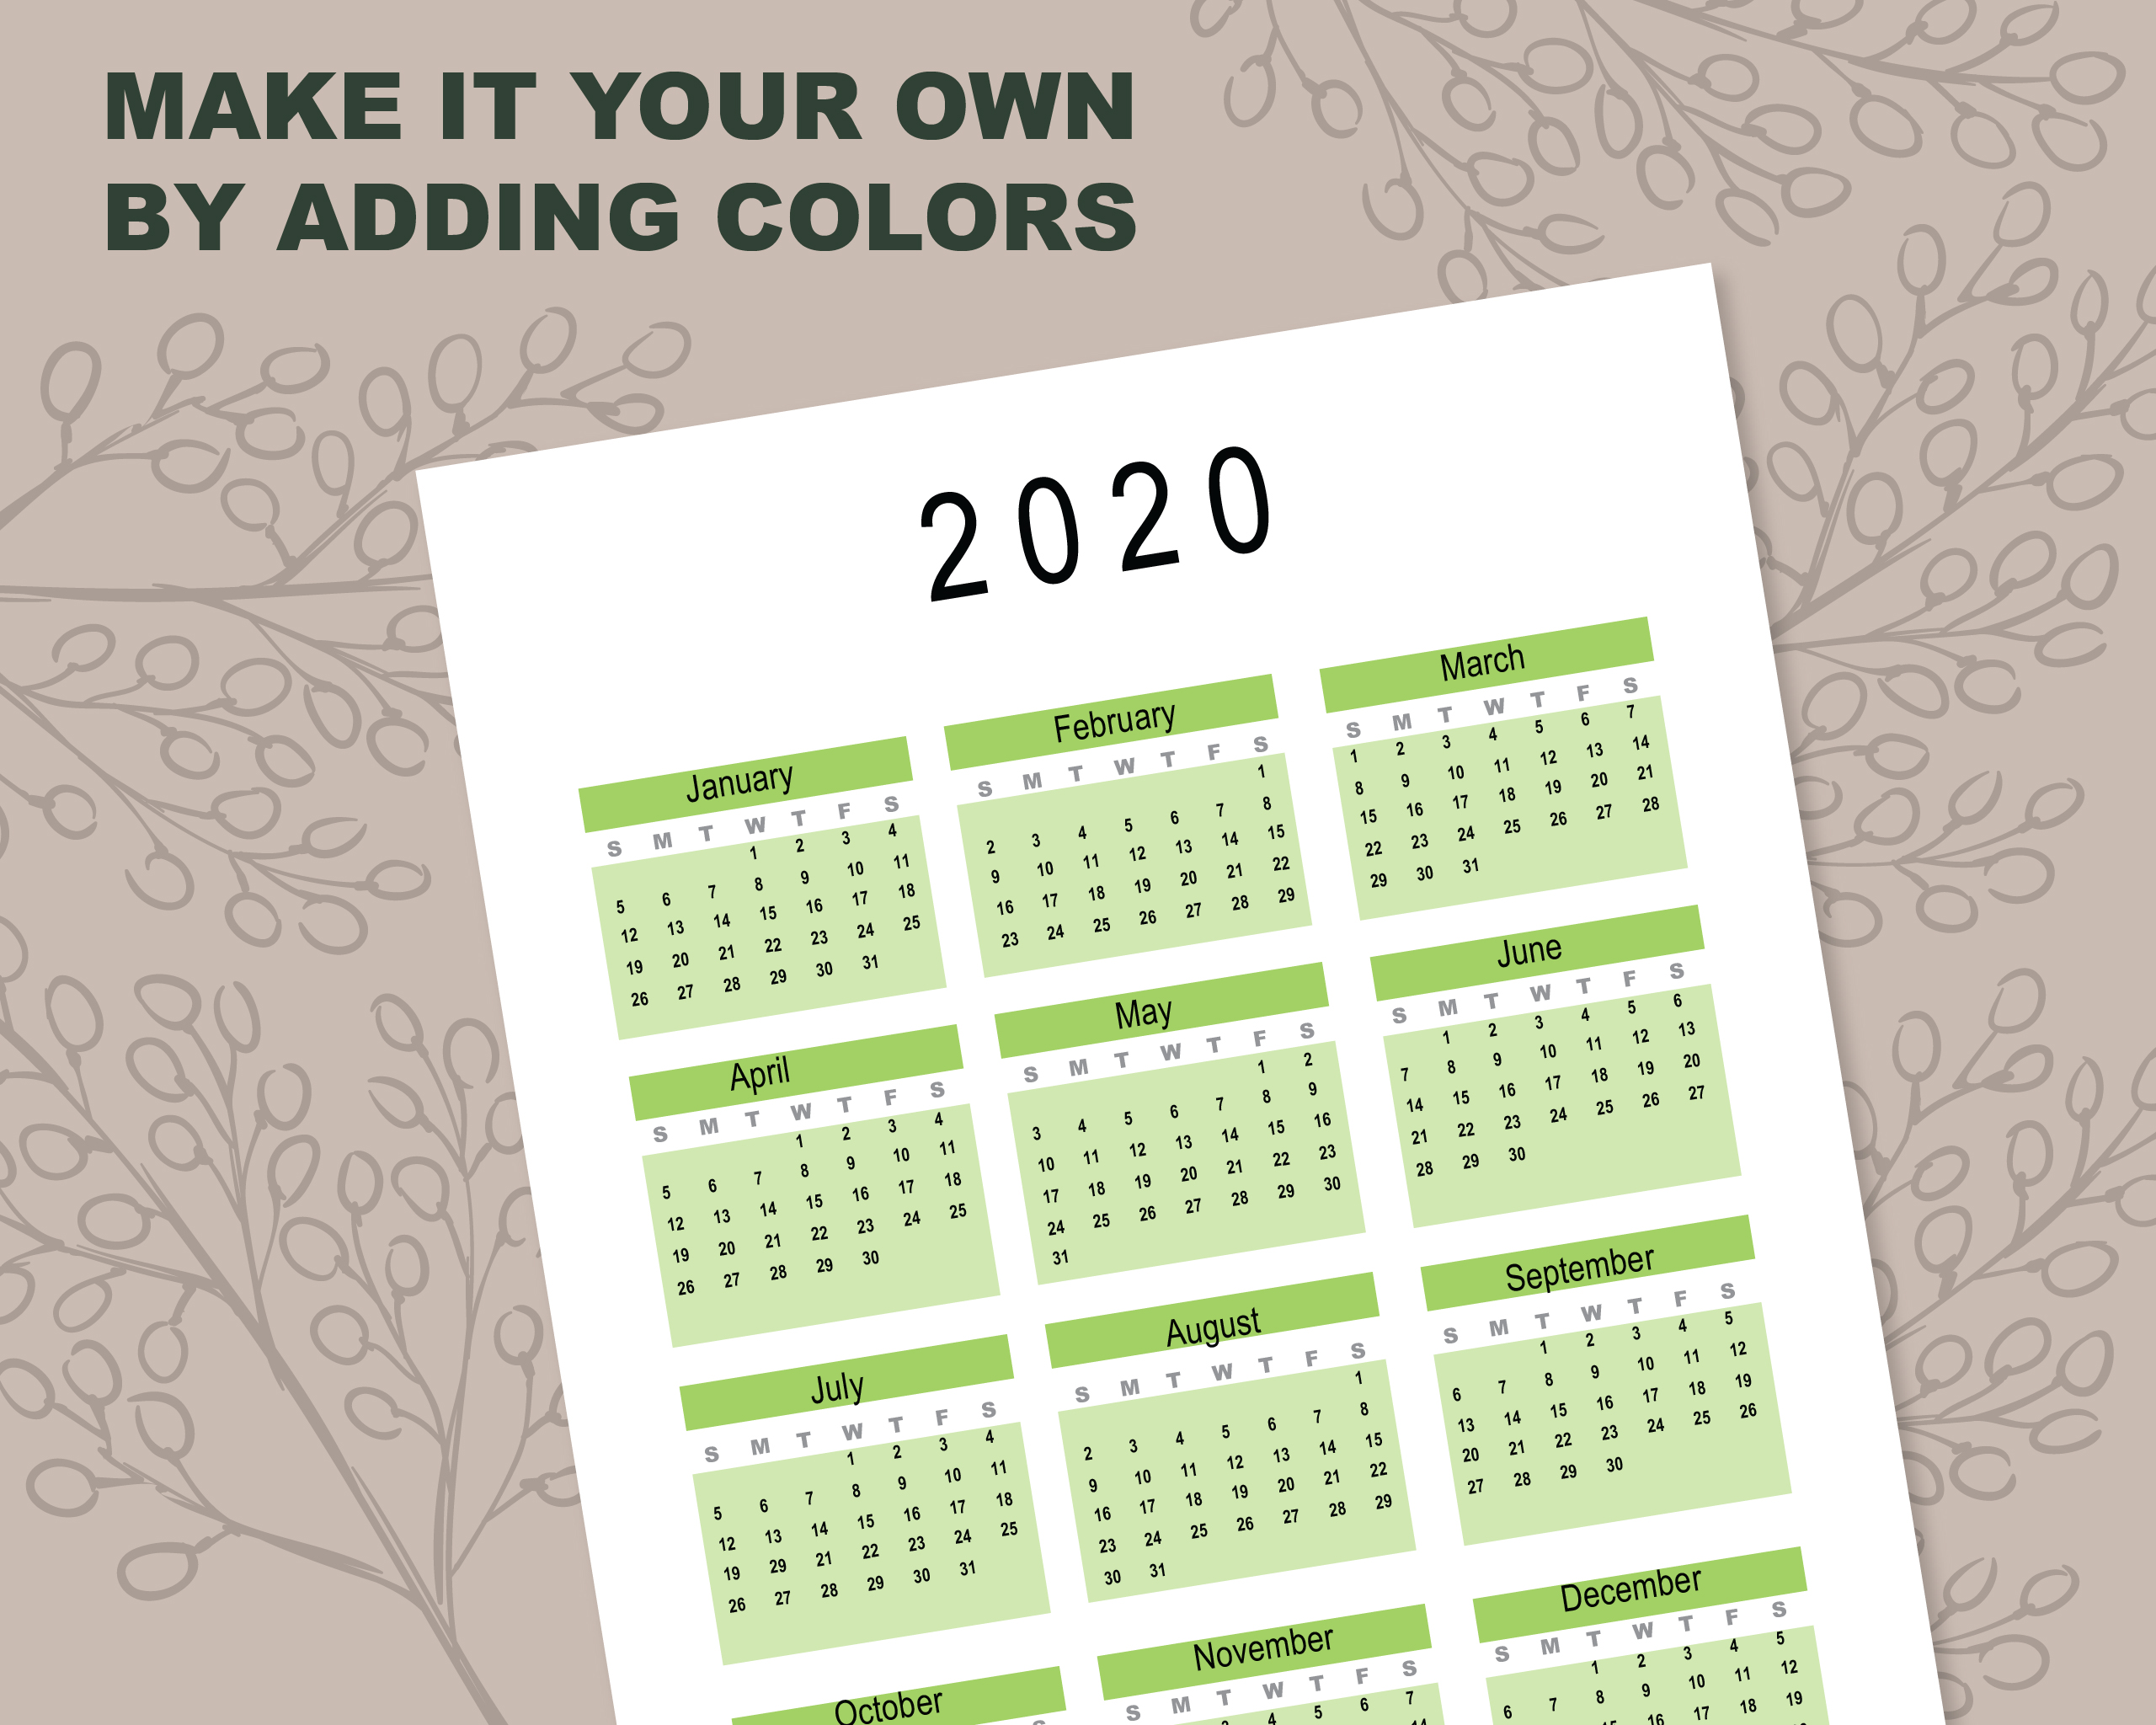 2020 Calendar Template for Commercial Use - PSD, EPS, PDF example image 4